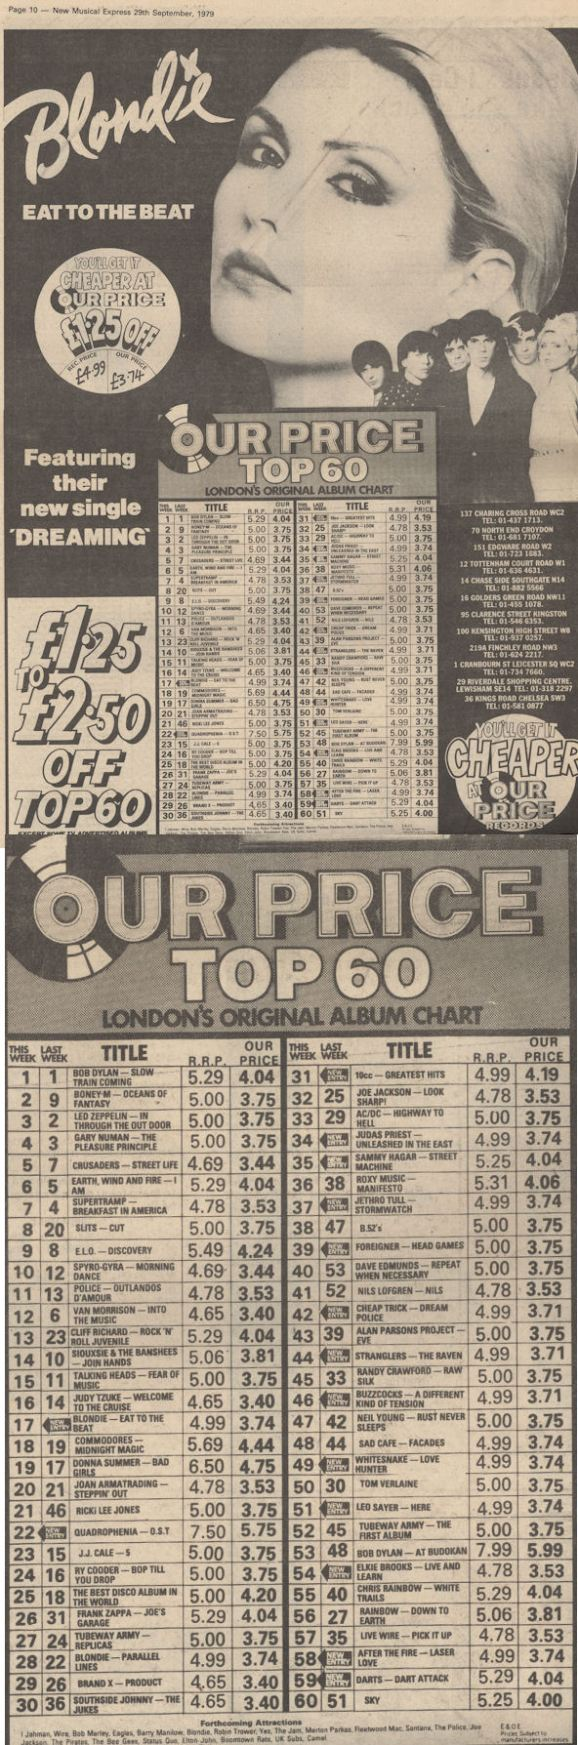 BLOG NME Sept 29 1979 OUR Price Blondie Ad and Top100